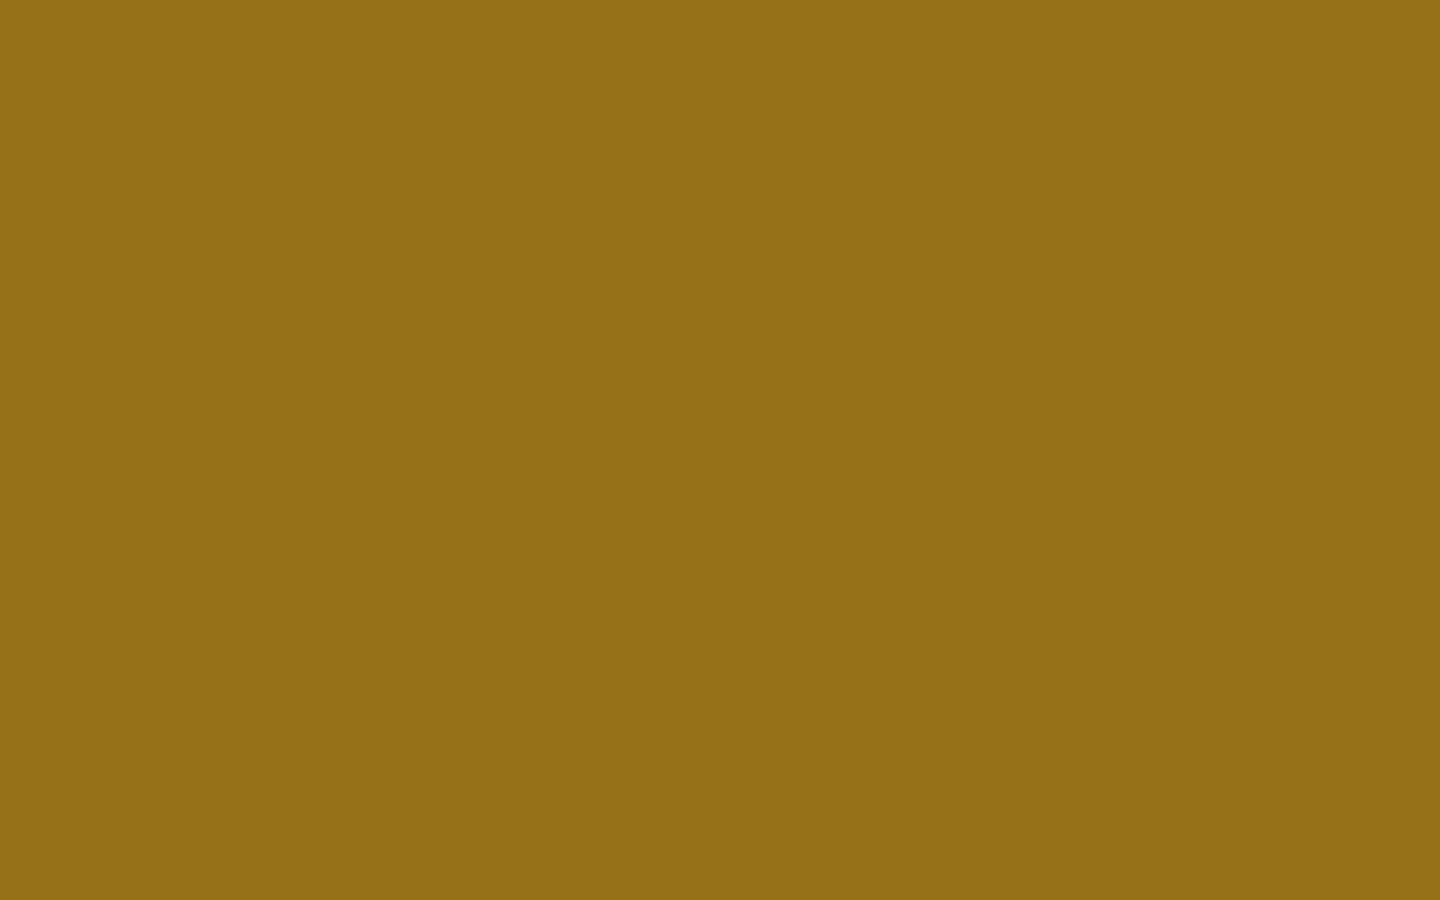 1440x900 Drab Solid Color Background